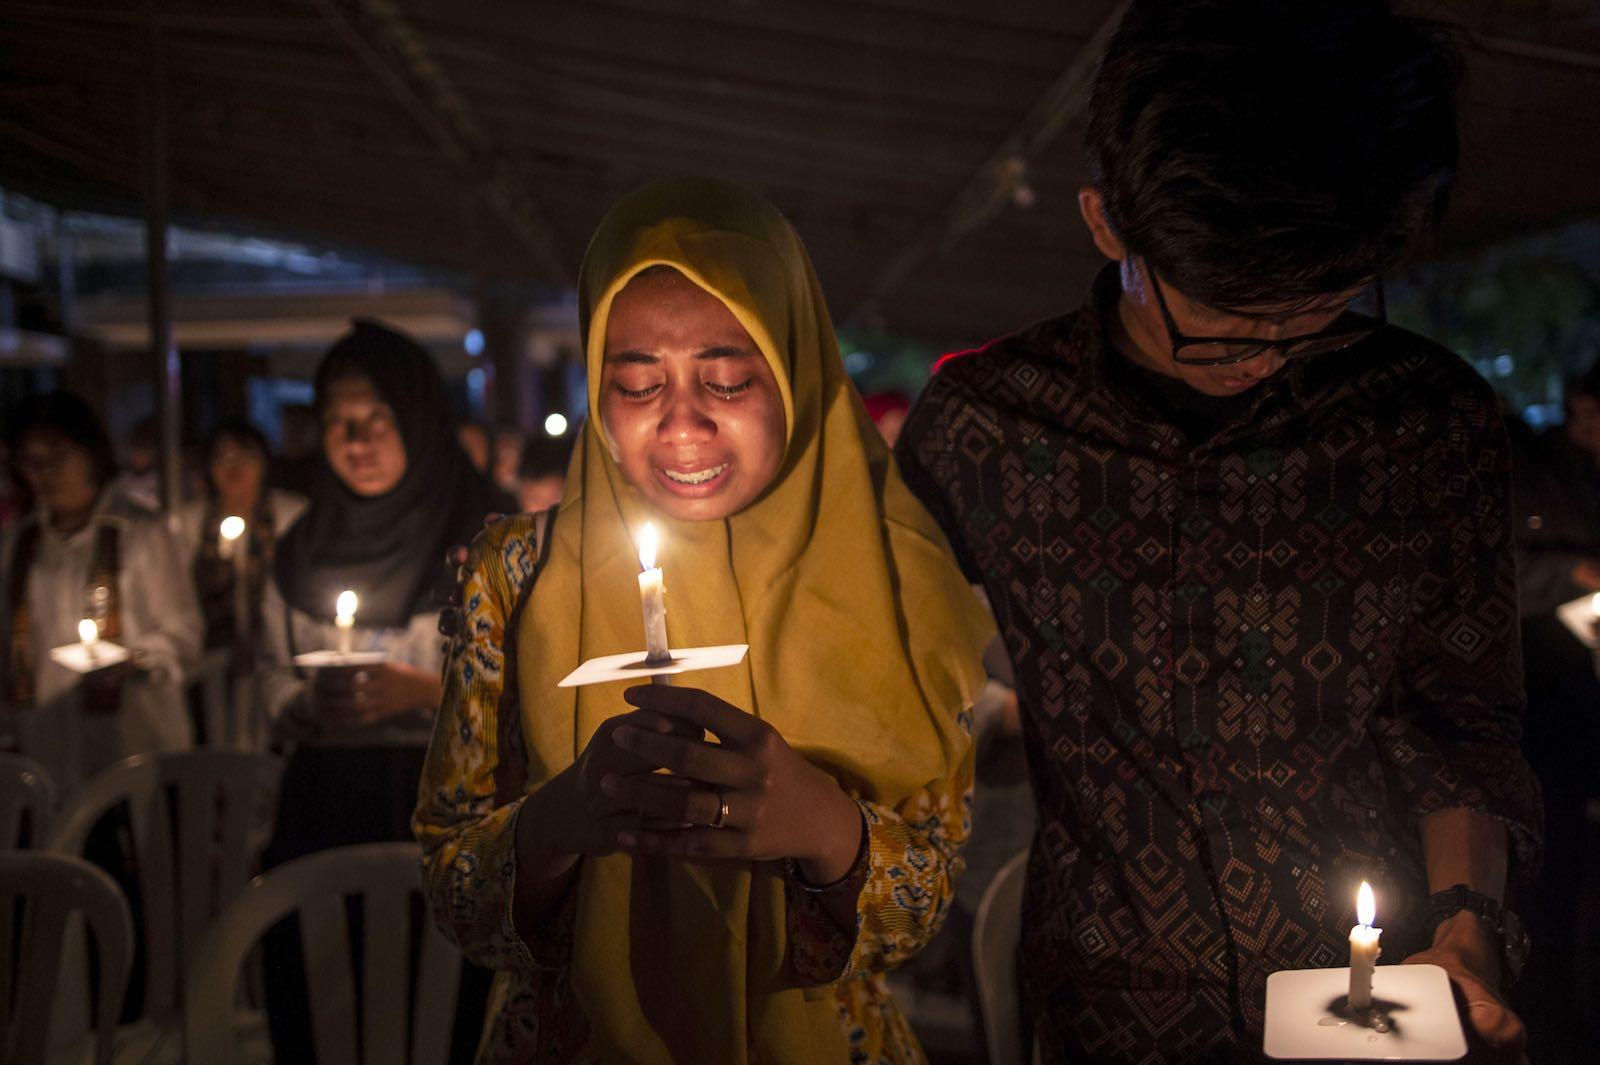 Tears during a candlelight vigil to remember the victims of the 2018 Surabaya suicide bombings (Photo: Juni Kriswanto via Getty)